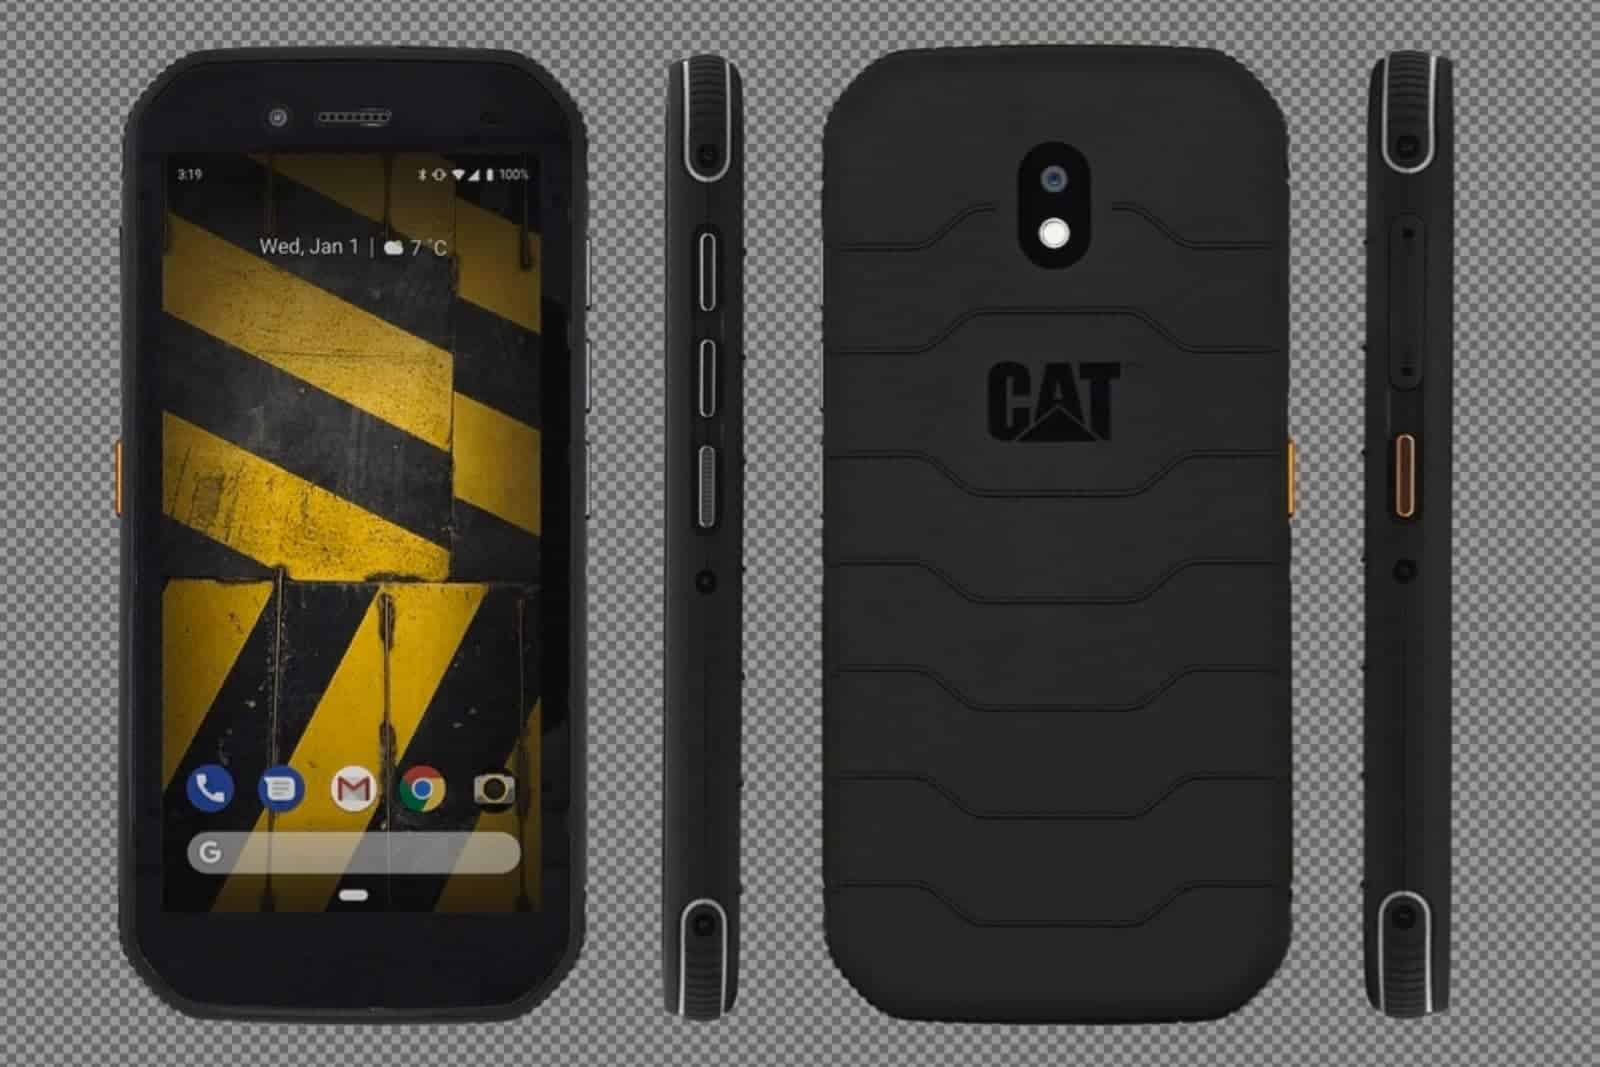 01 CAT S42 Smartphone Render vb1666401 Paddington Orthographic